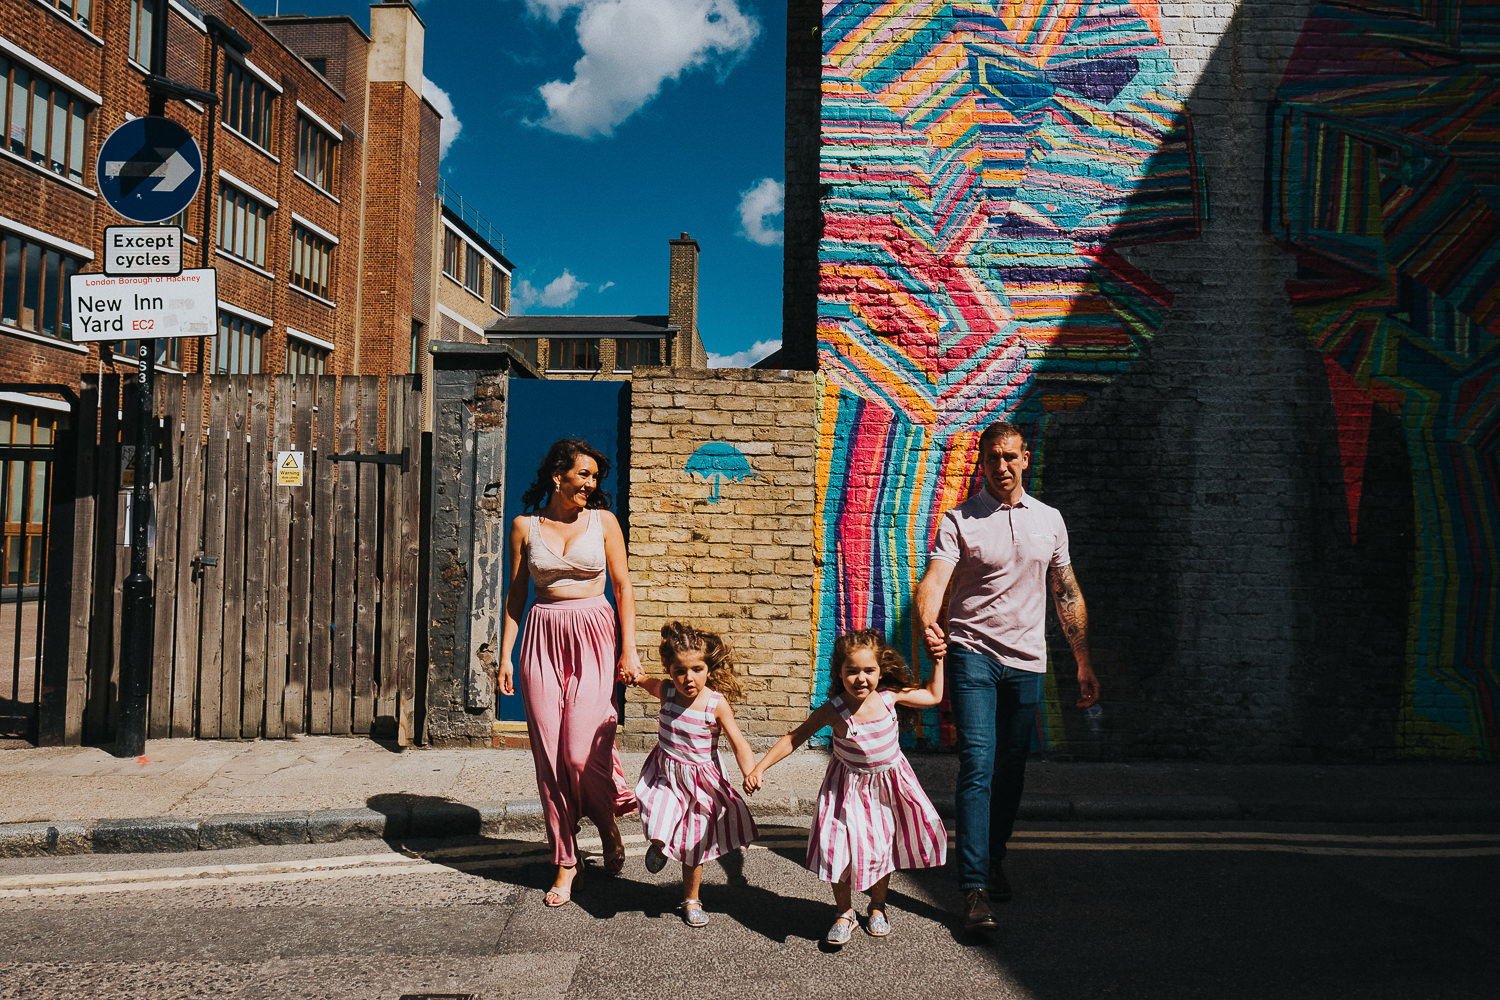 family photo shoot in shoreditch street art twin girls and parents running fun photos